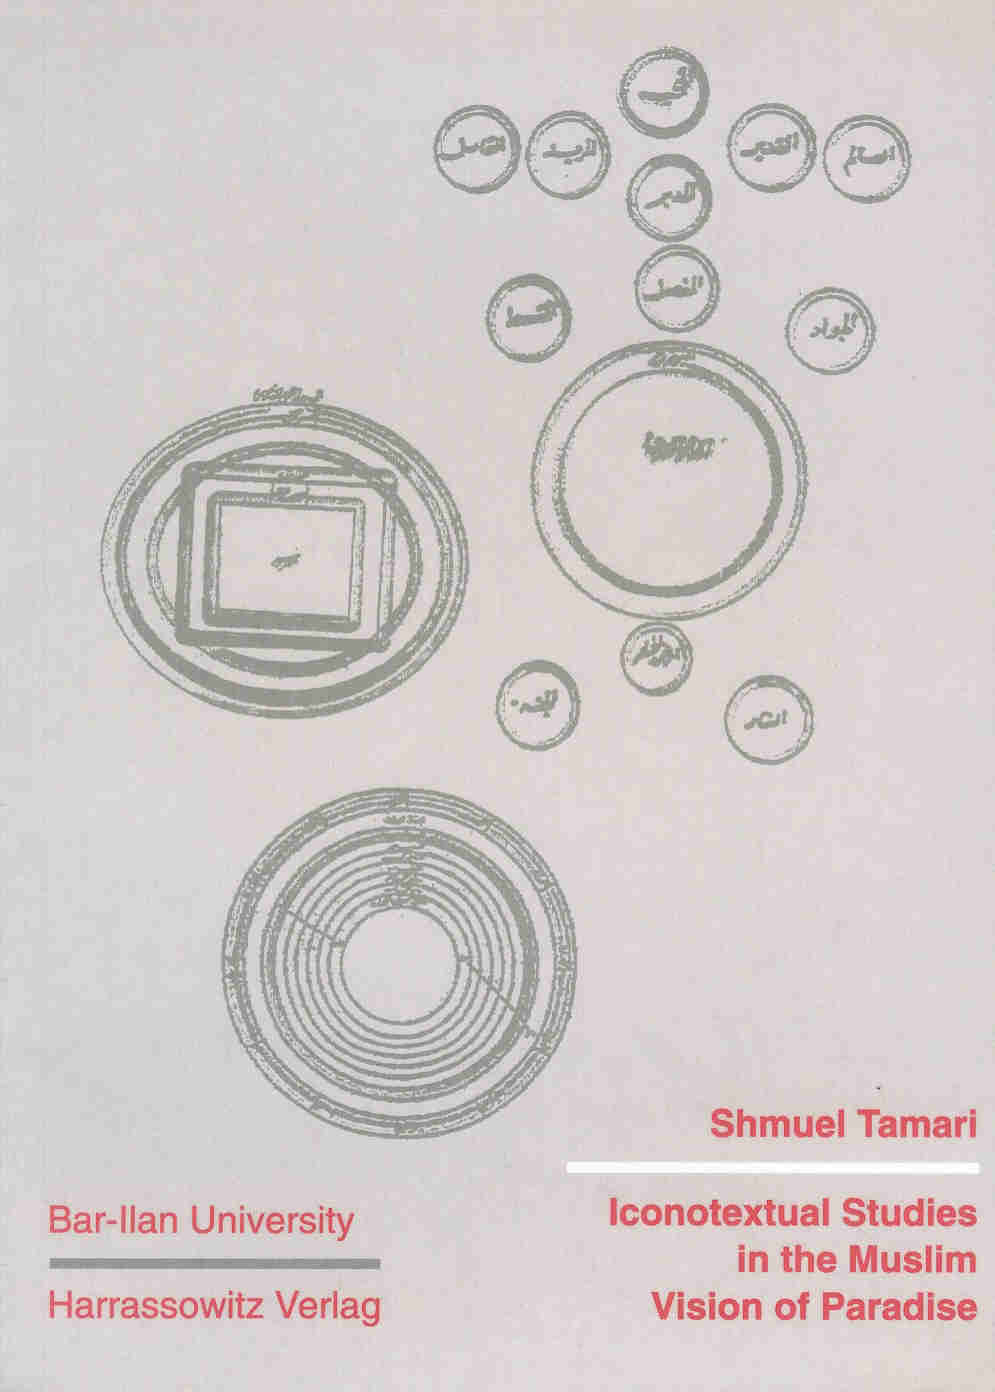 Iconotextual Studies in the Muslim Ideology of Ummayyad Architecture and Urbanism Vol. III